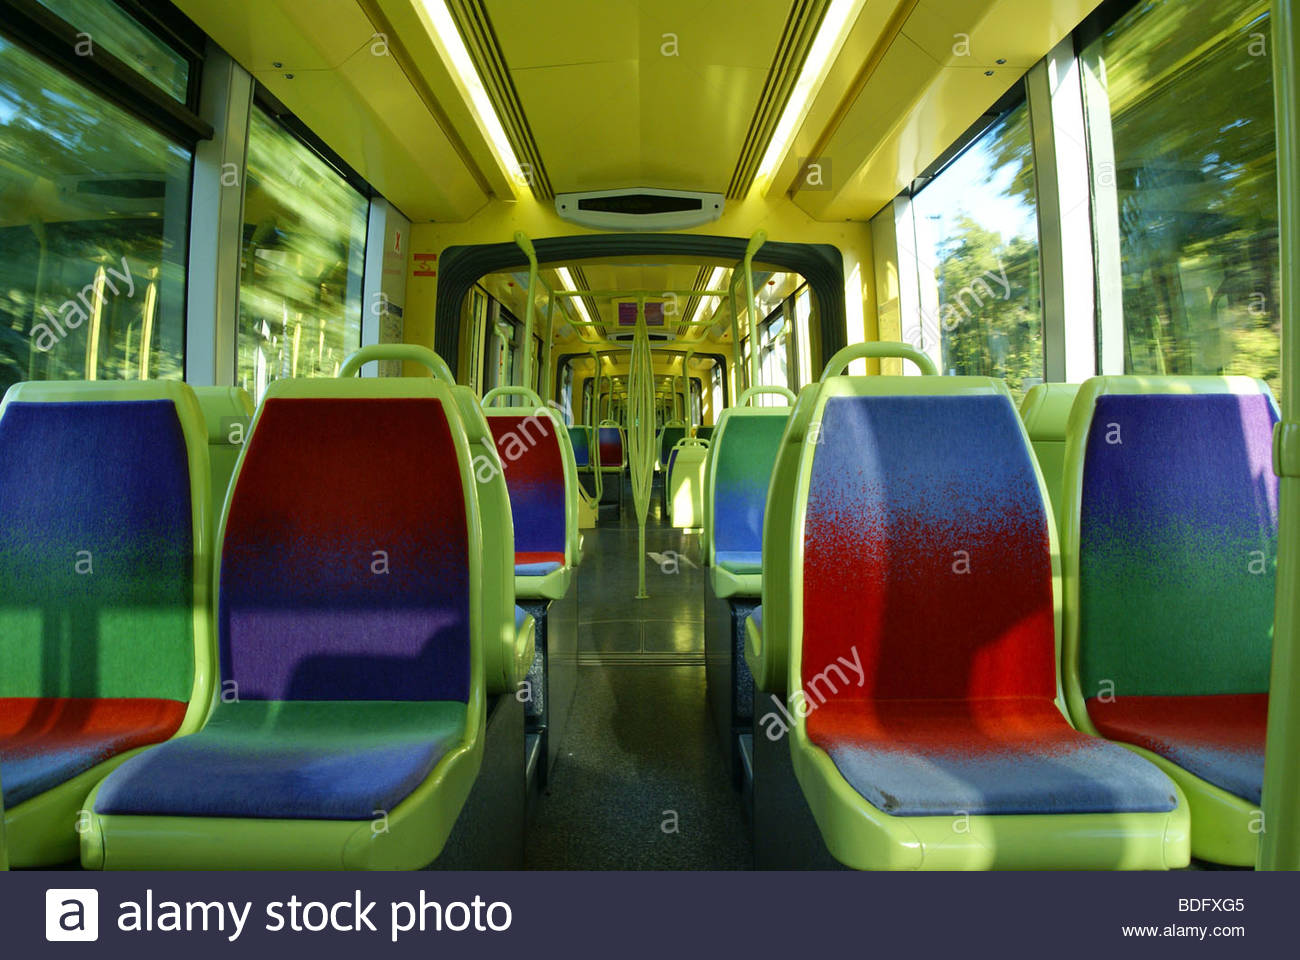 Les transports en commun : le tramway Photo Stock